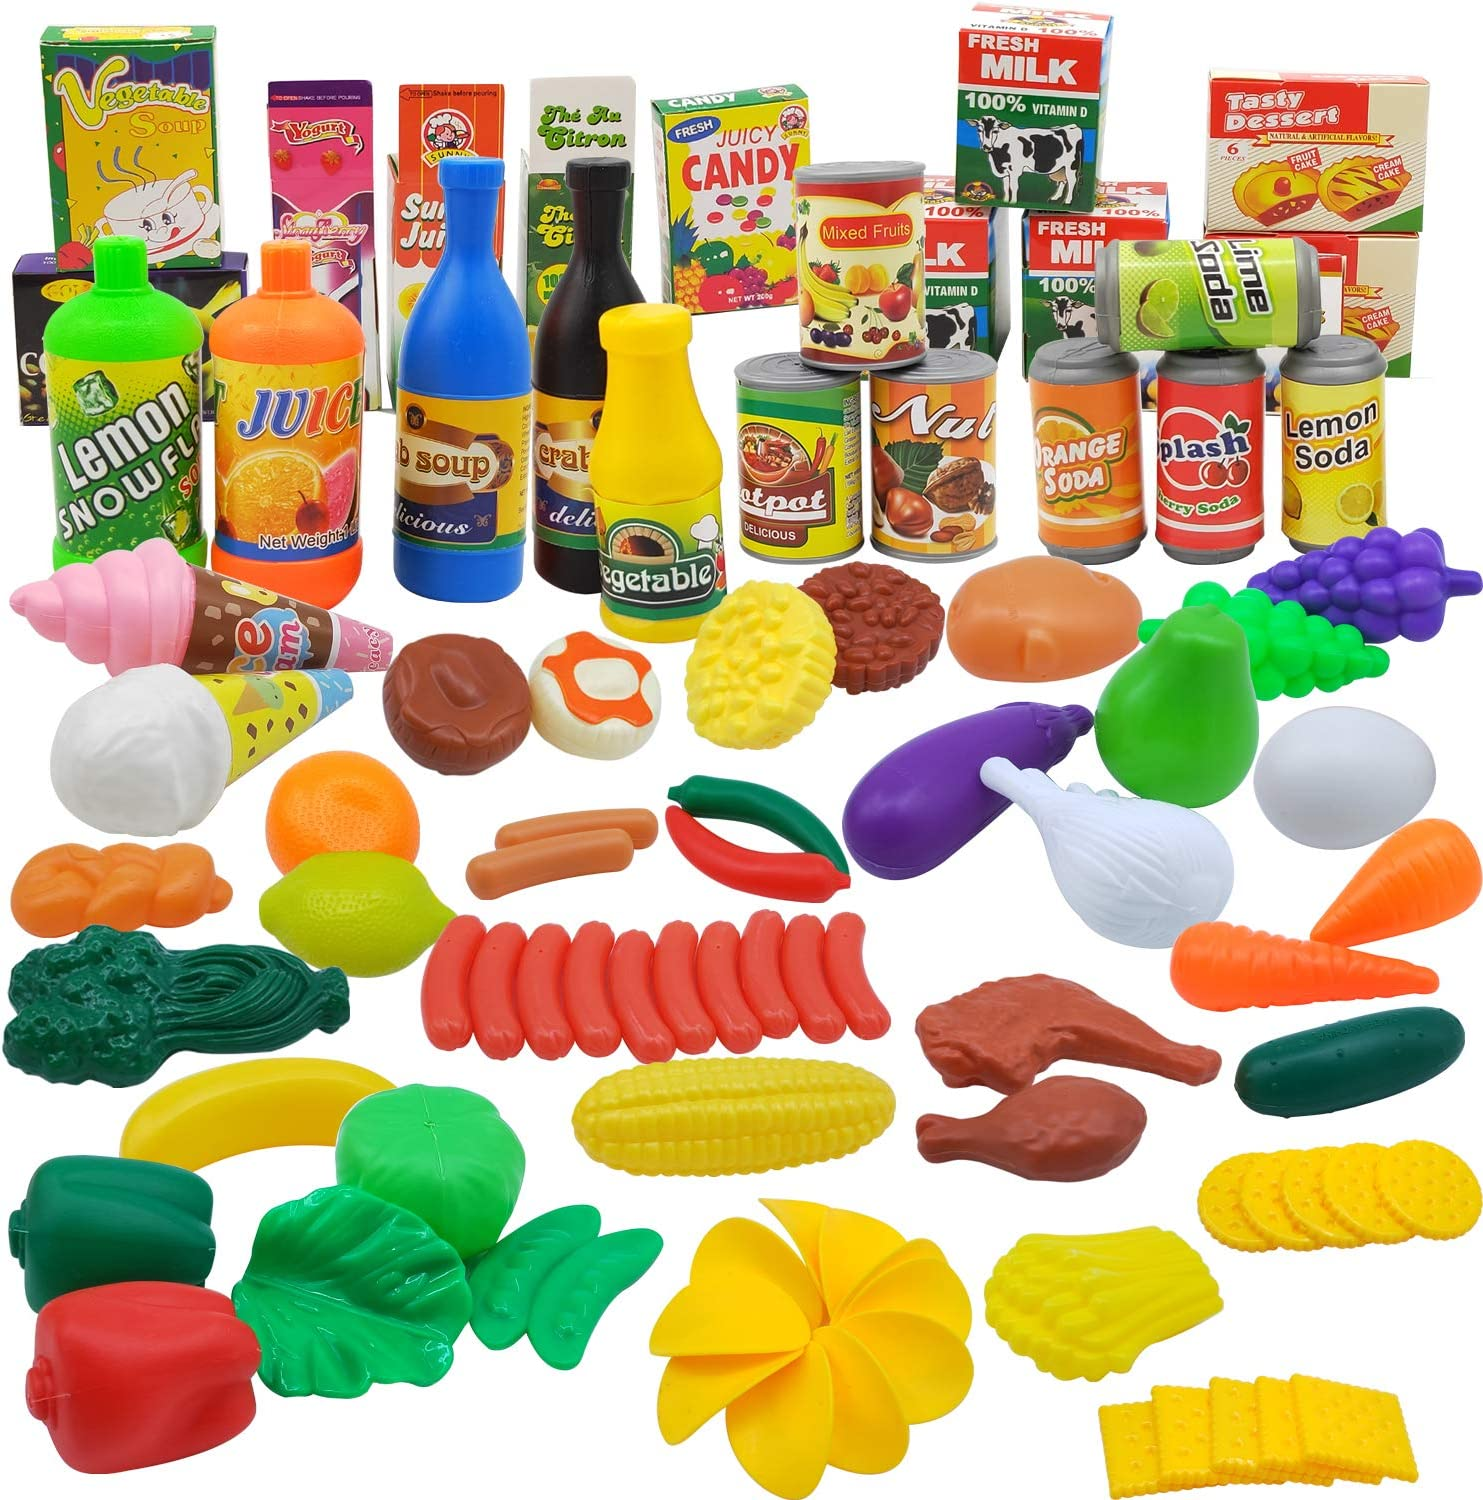 No-branded Pretend Play Food Set - 90 Pc Fake Foods & Play Kitchen Accessories Toys Playset for Kids Toddlers Educational & Fun